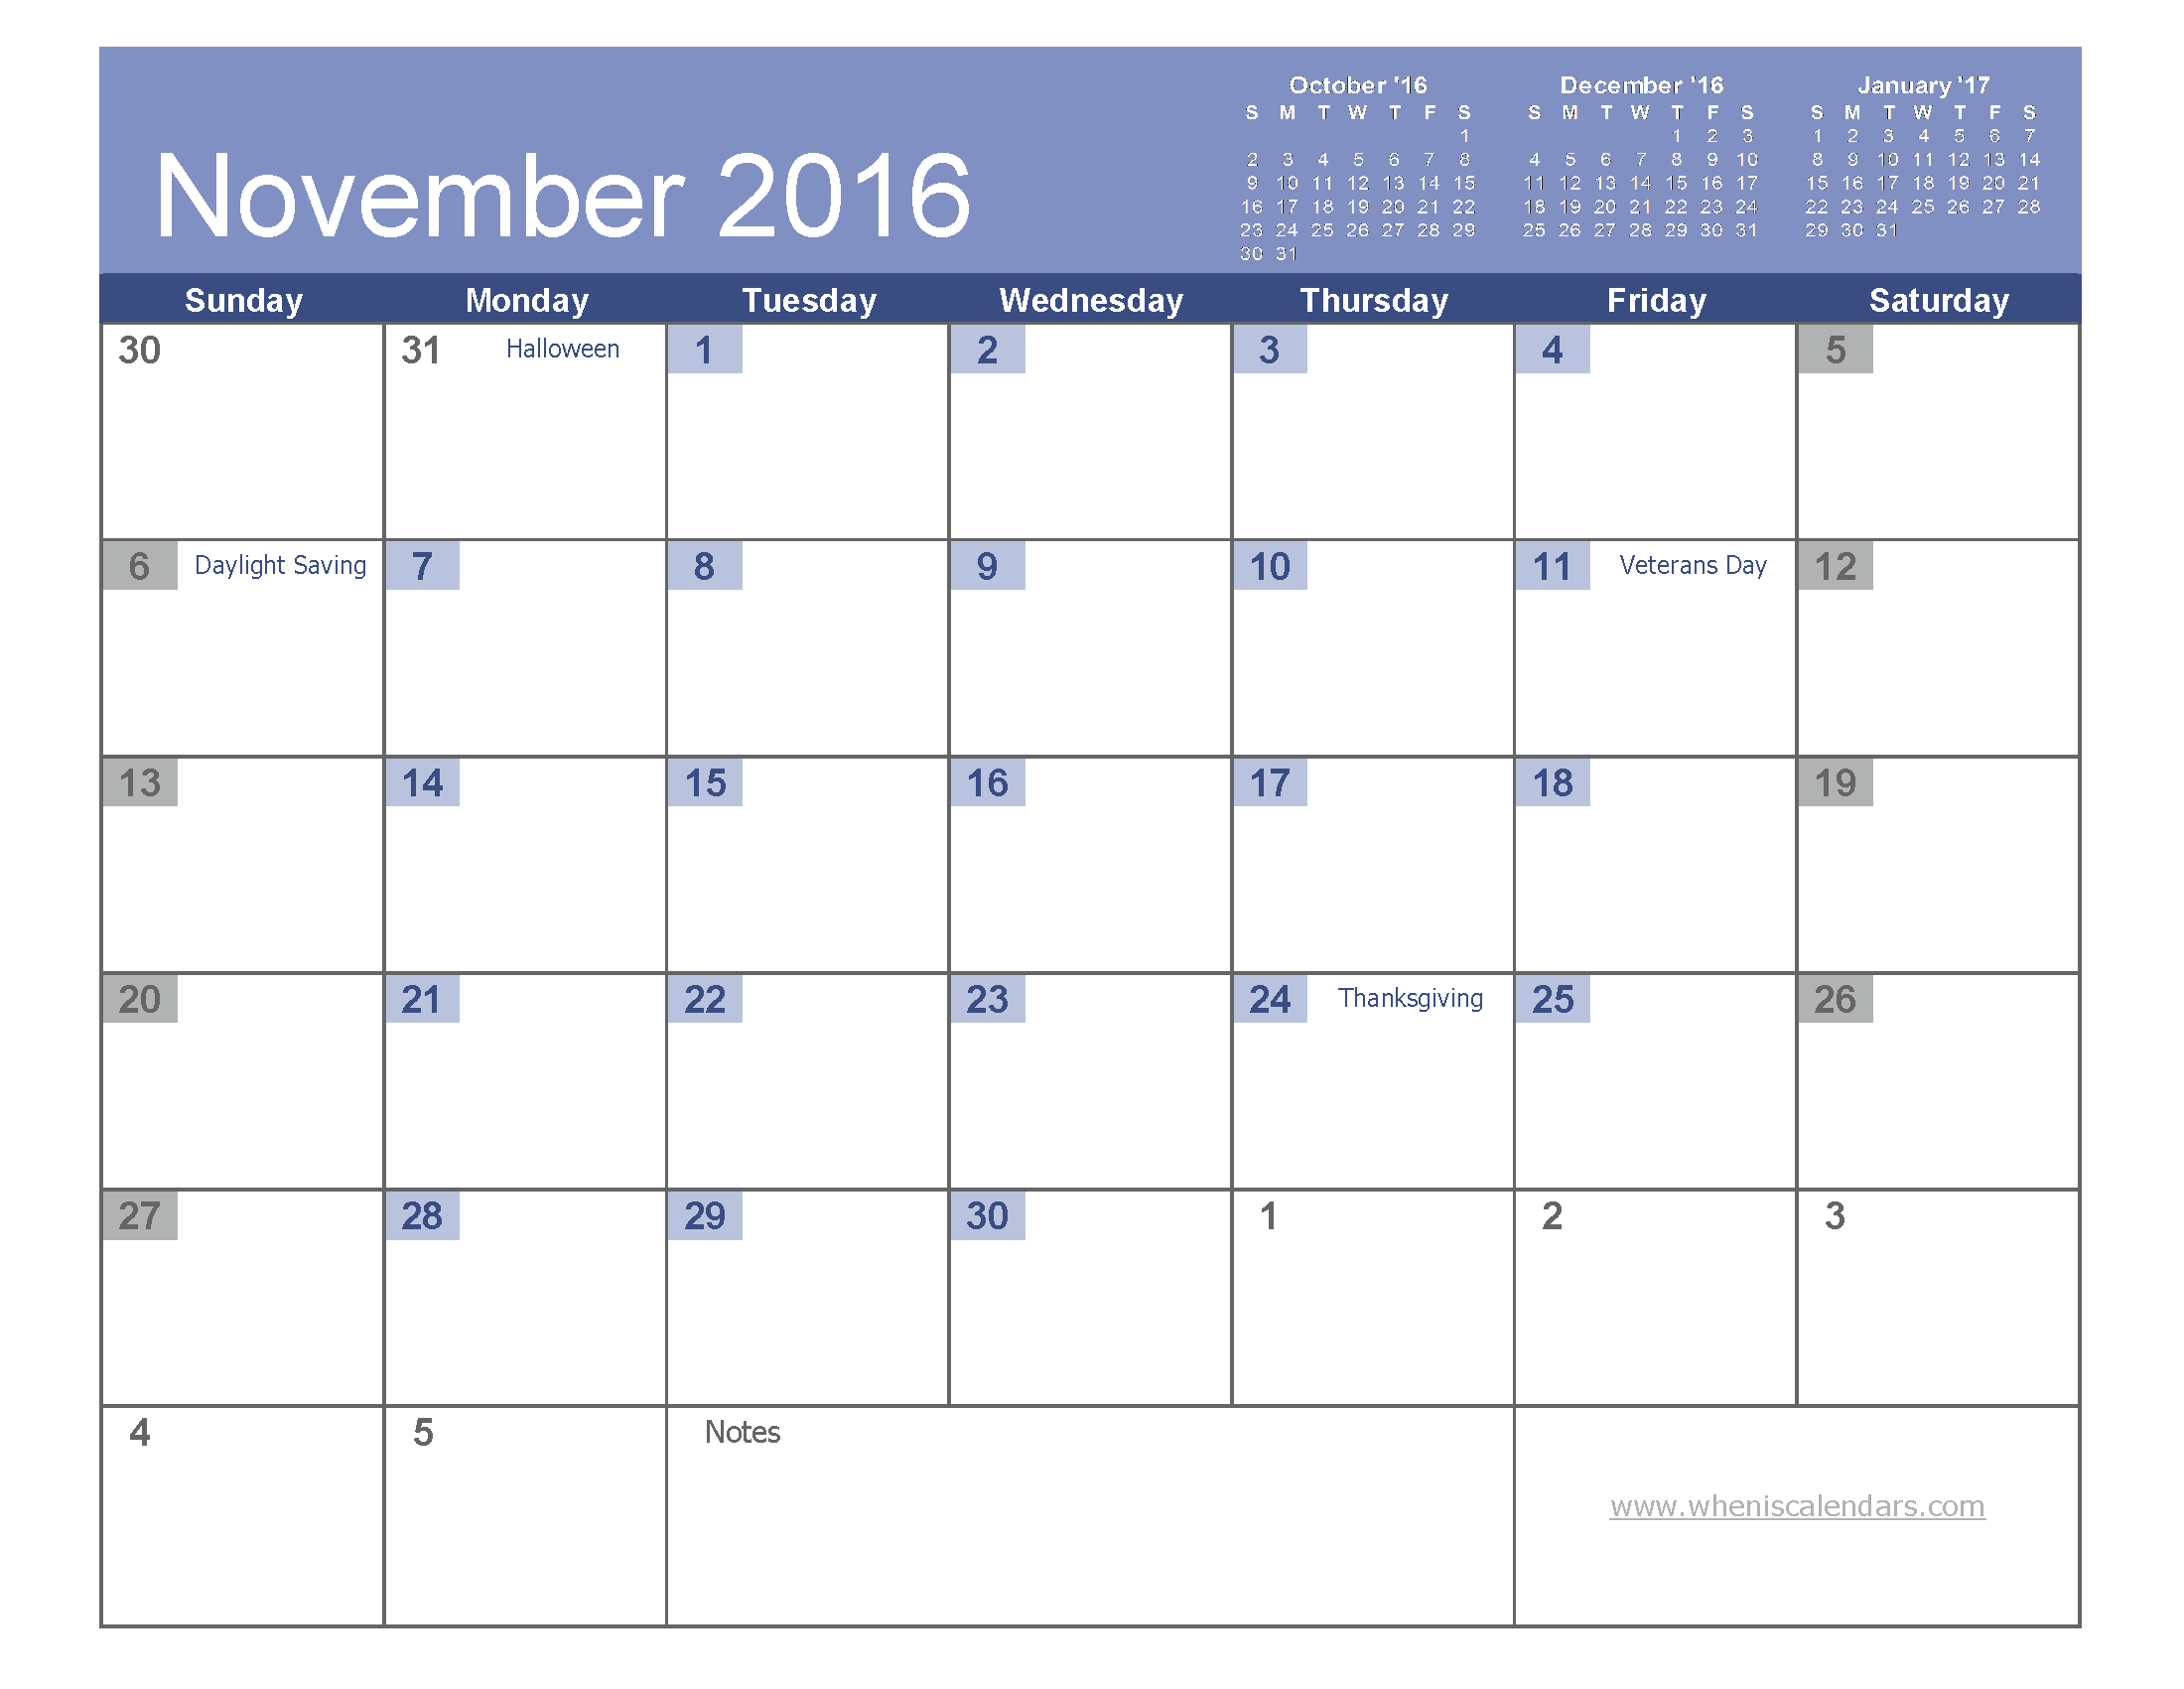 November 2016 Calendar Printable With Holidays | monthly calendar